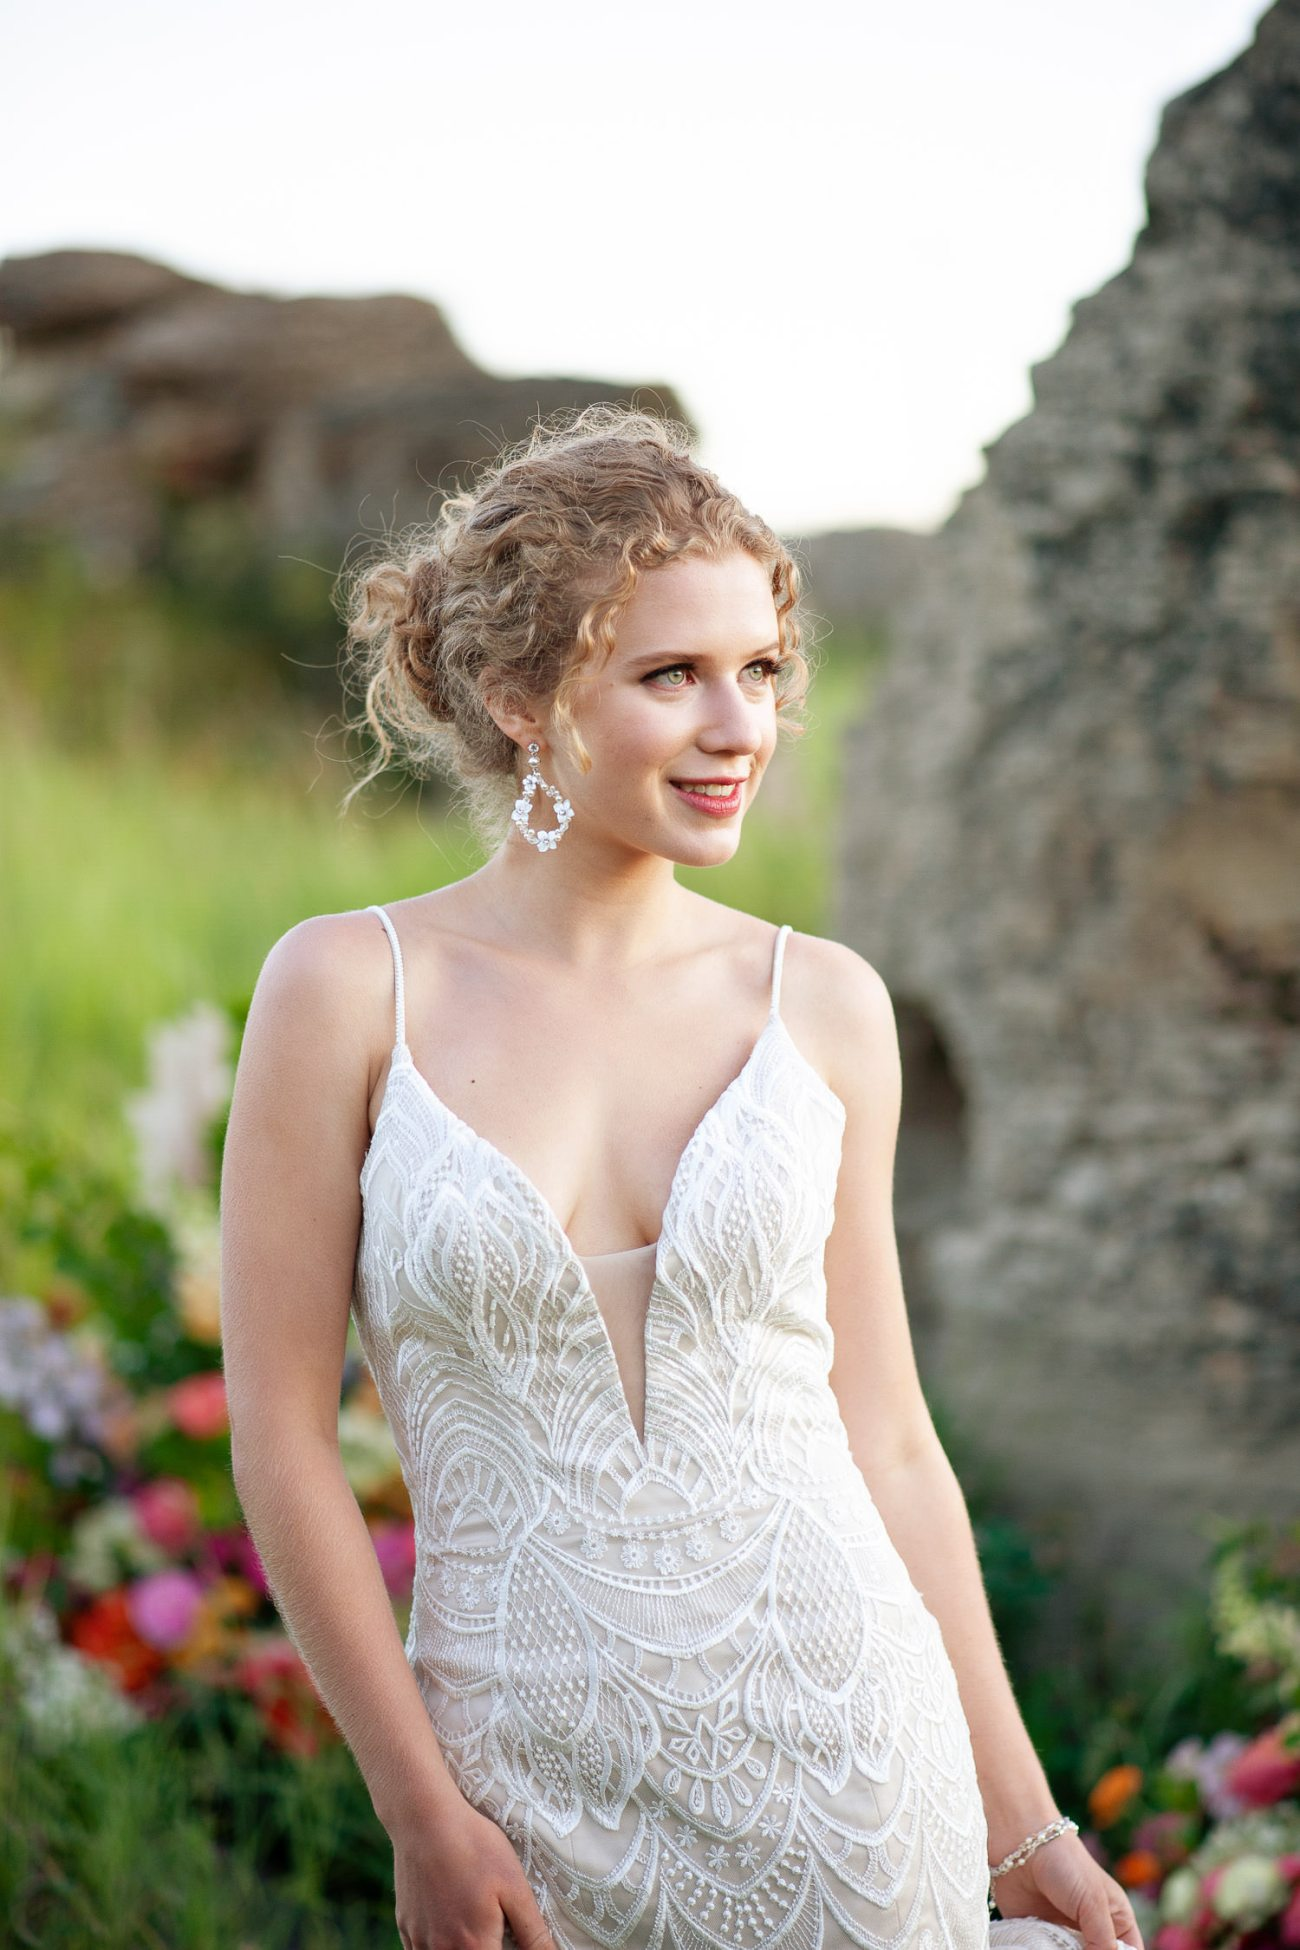 Alberta bride wearing a lace gown from Lis Simon captured by Tara Whittaker Photography